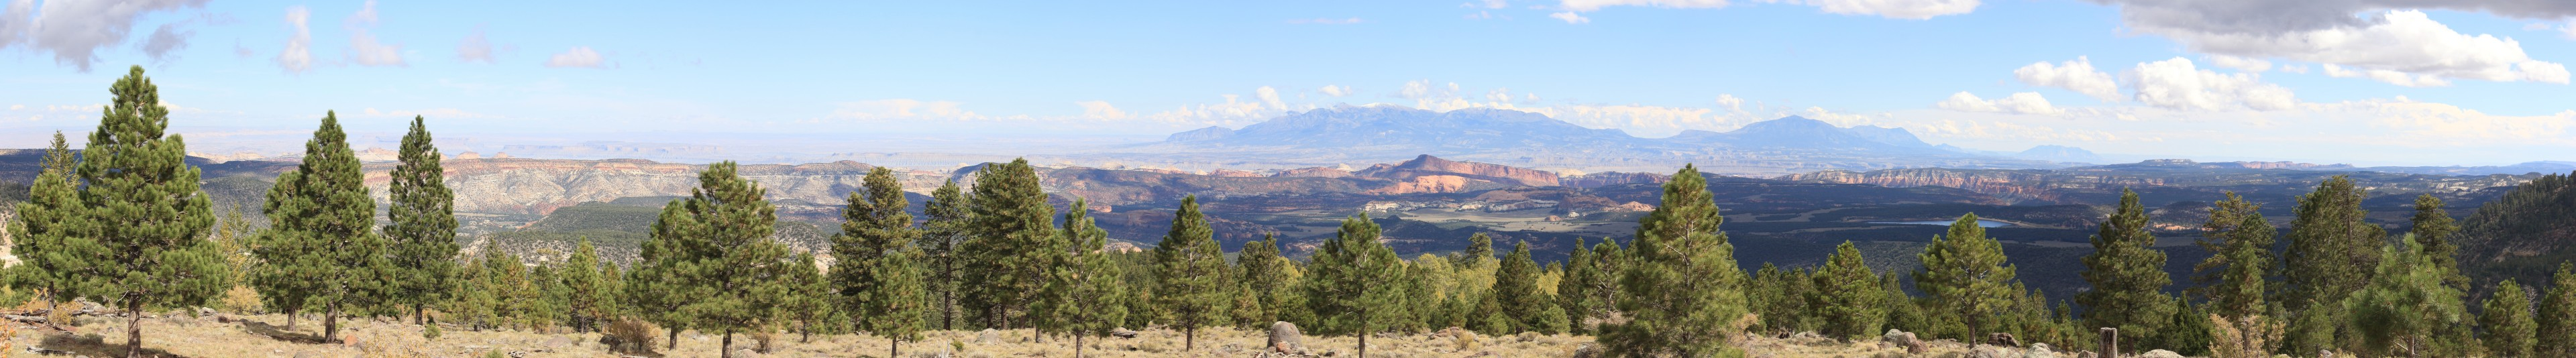 The View from Boulder Mountain. From US 12 on top of Boulder Mountain. The Capitol Reef (middle) and WaterPocket Fold (right) in the mid-distance with the Henry Mountains on the horizon.